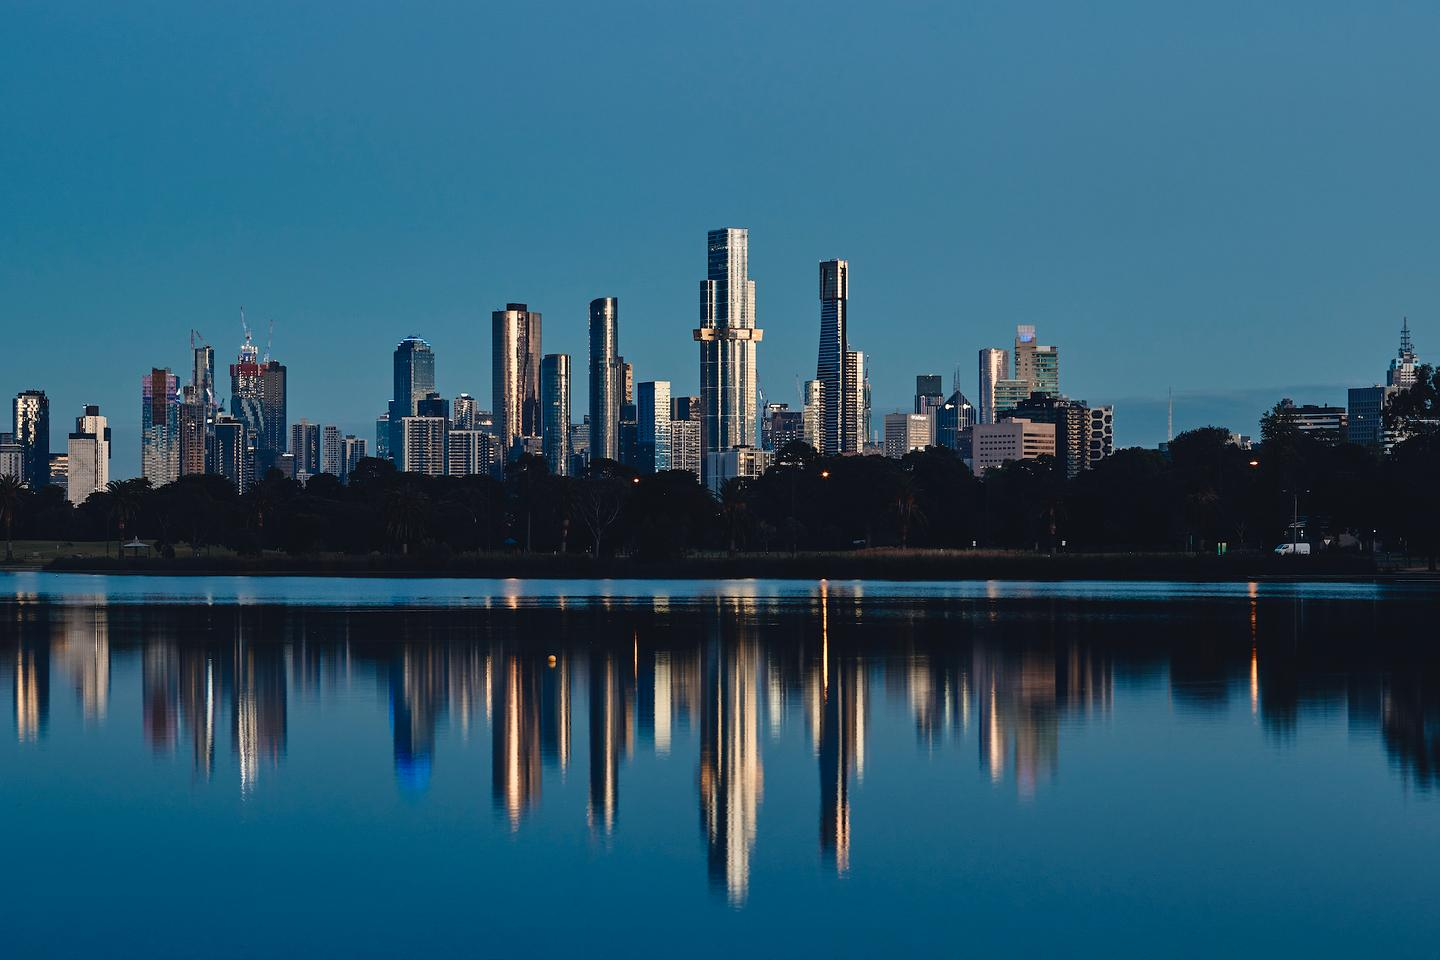 Australia 108 is located in Melbourne, near another tower by Fender Katsalidis, the